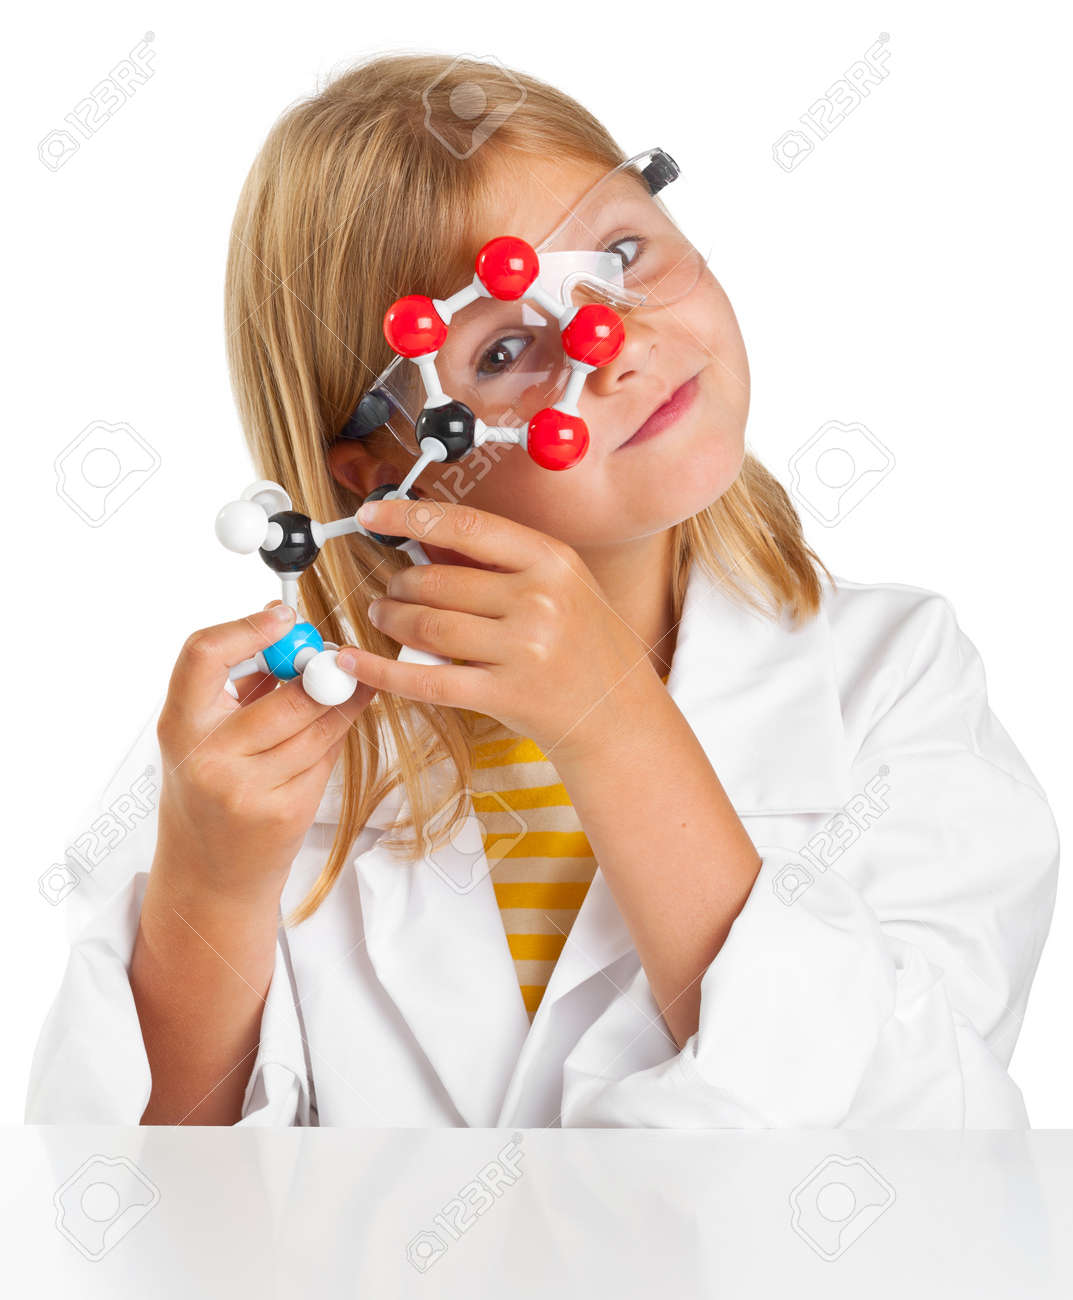 Cute young girl doing science experiements Standard-Bild - 14508327